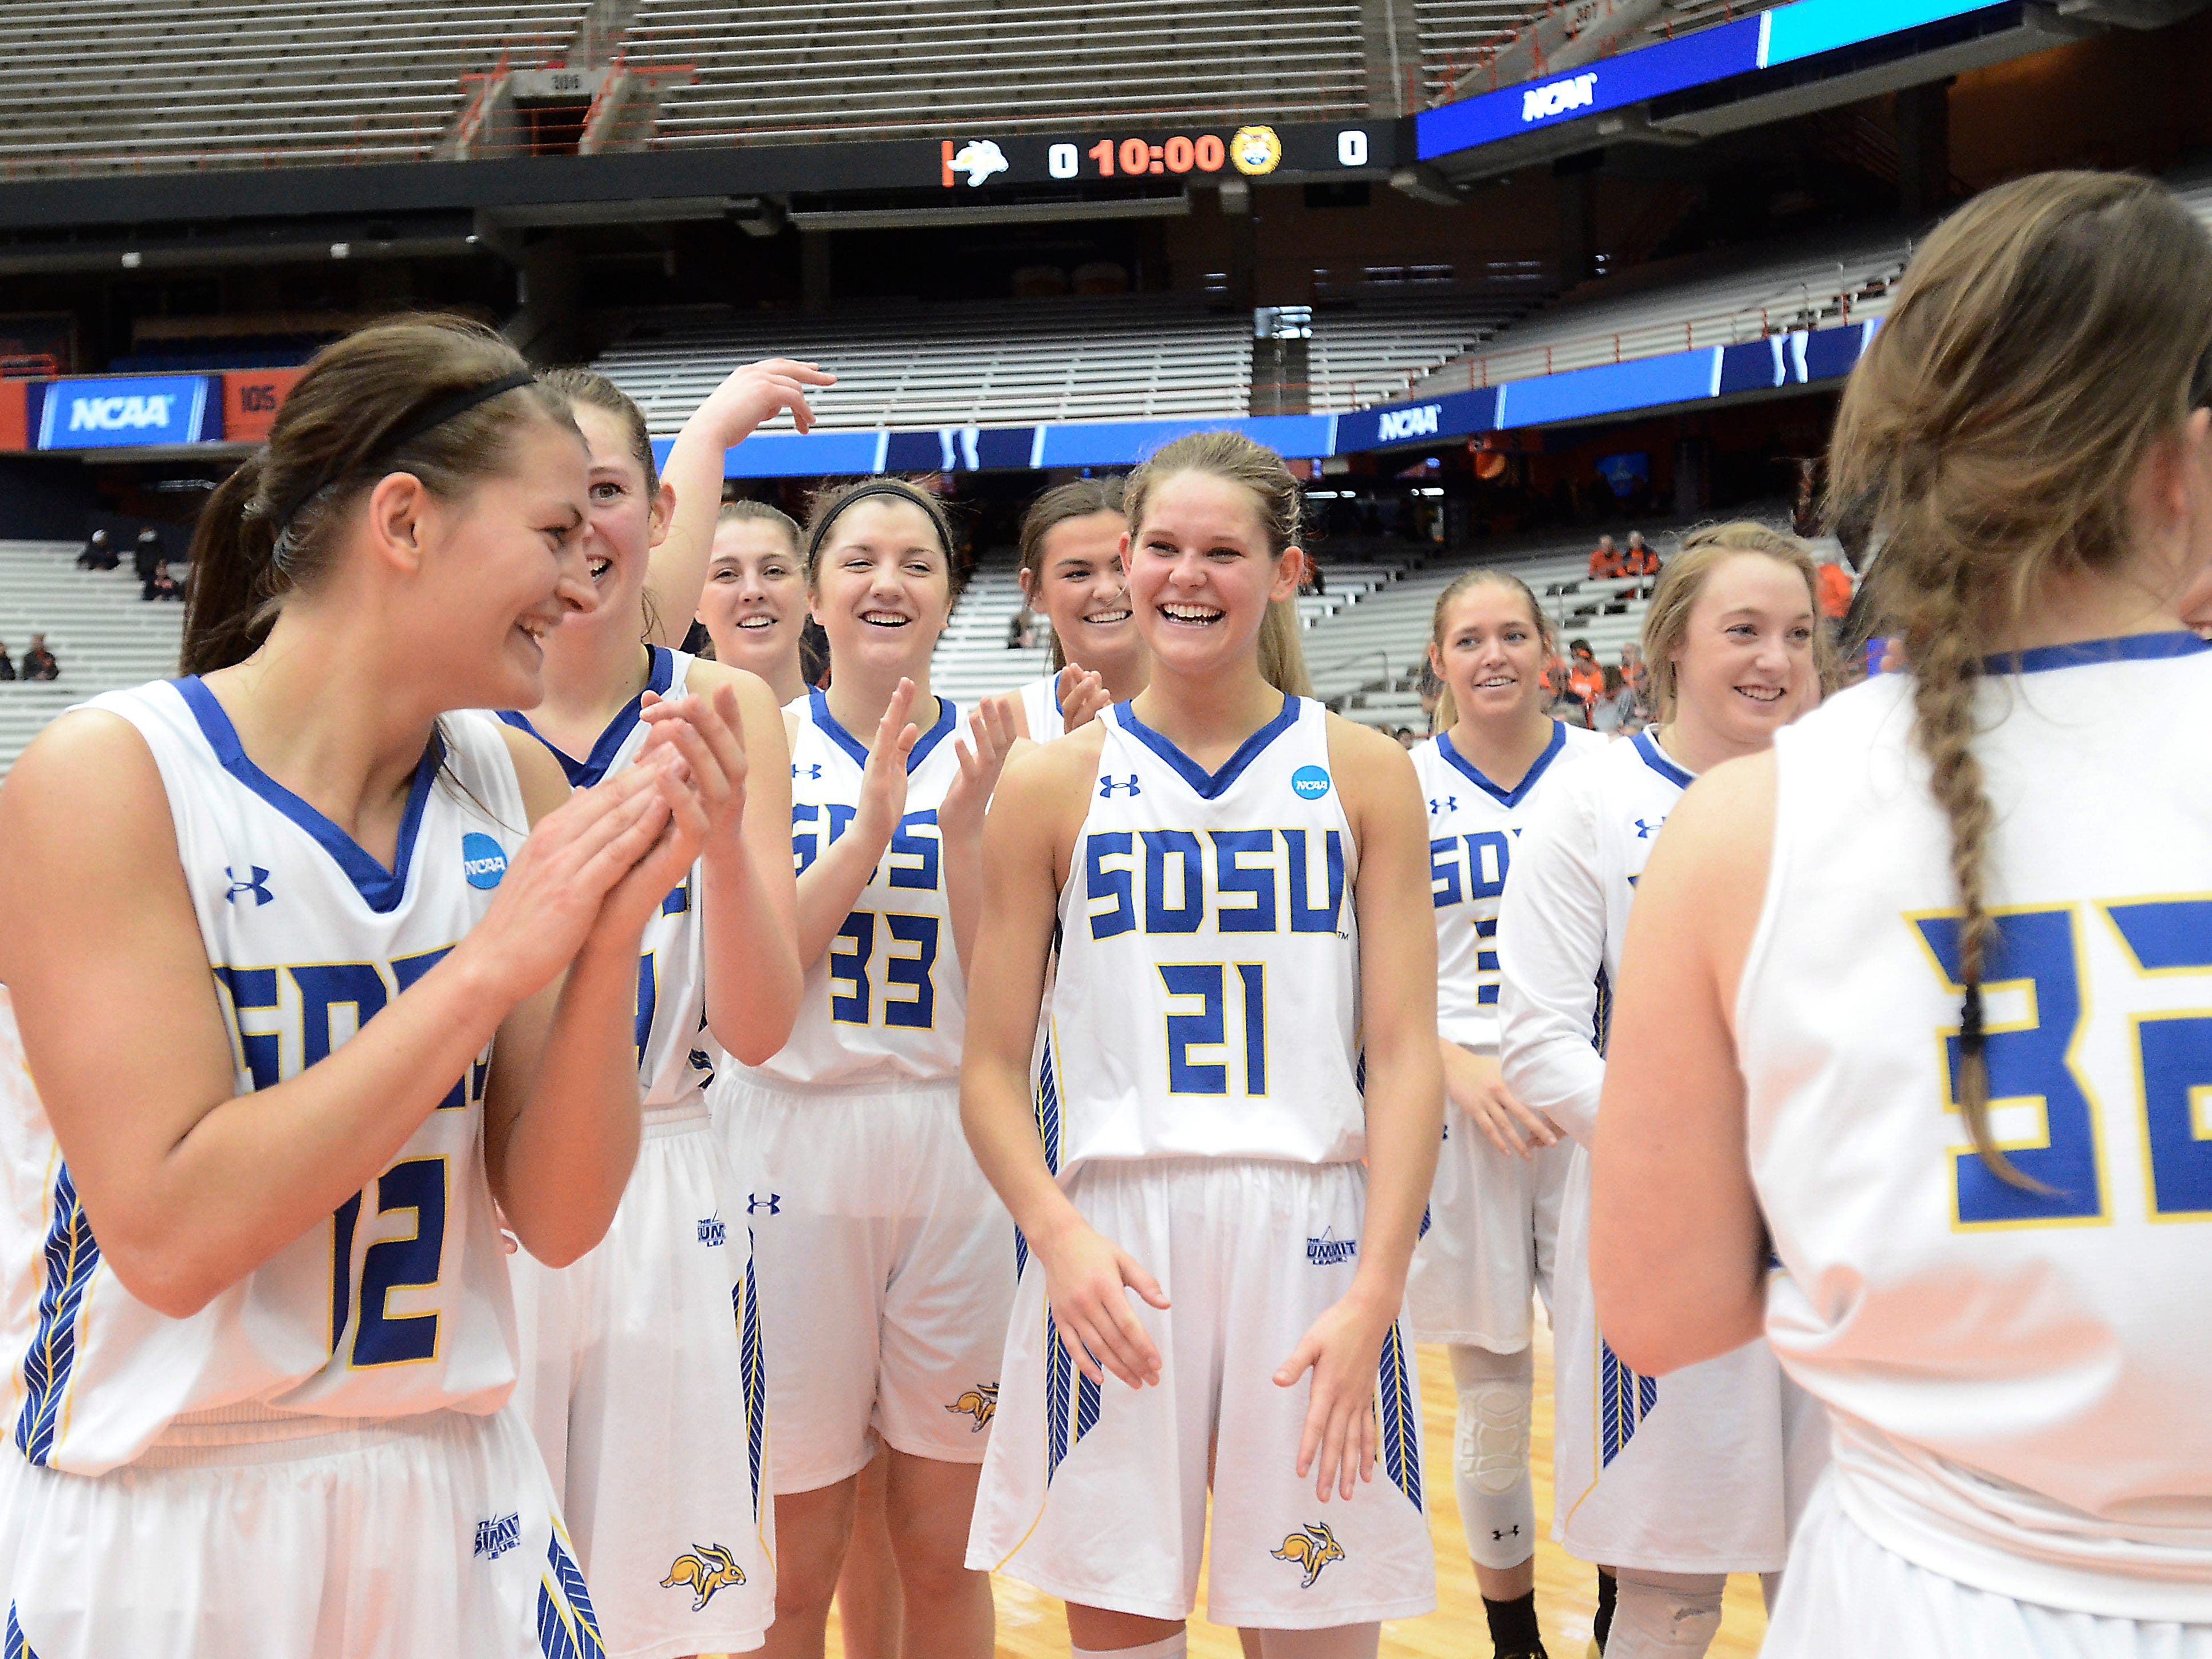 South Dakota State players celebrate after they defeated Quinnipiac in a first-round game in the NCAA women's college basketball tournament in Syracuse, N.Y., Saturday, March 23, 2019. (AP Photo/Heather Ainsworth)